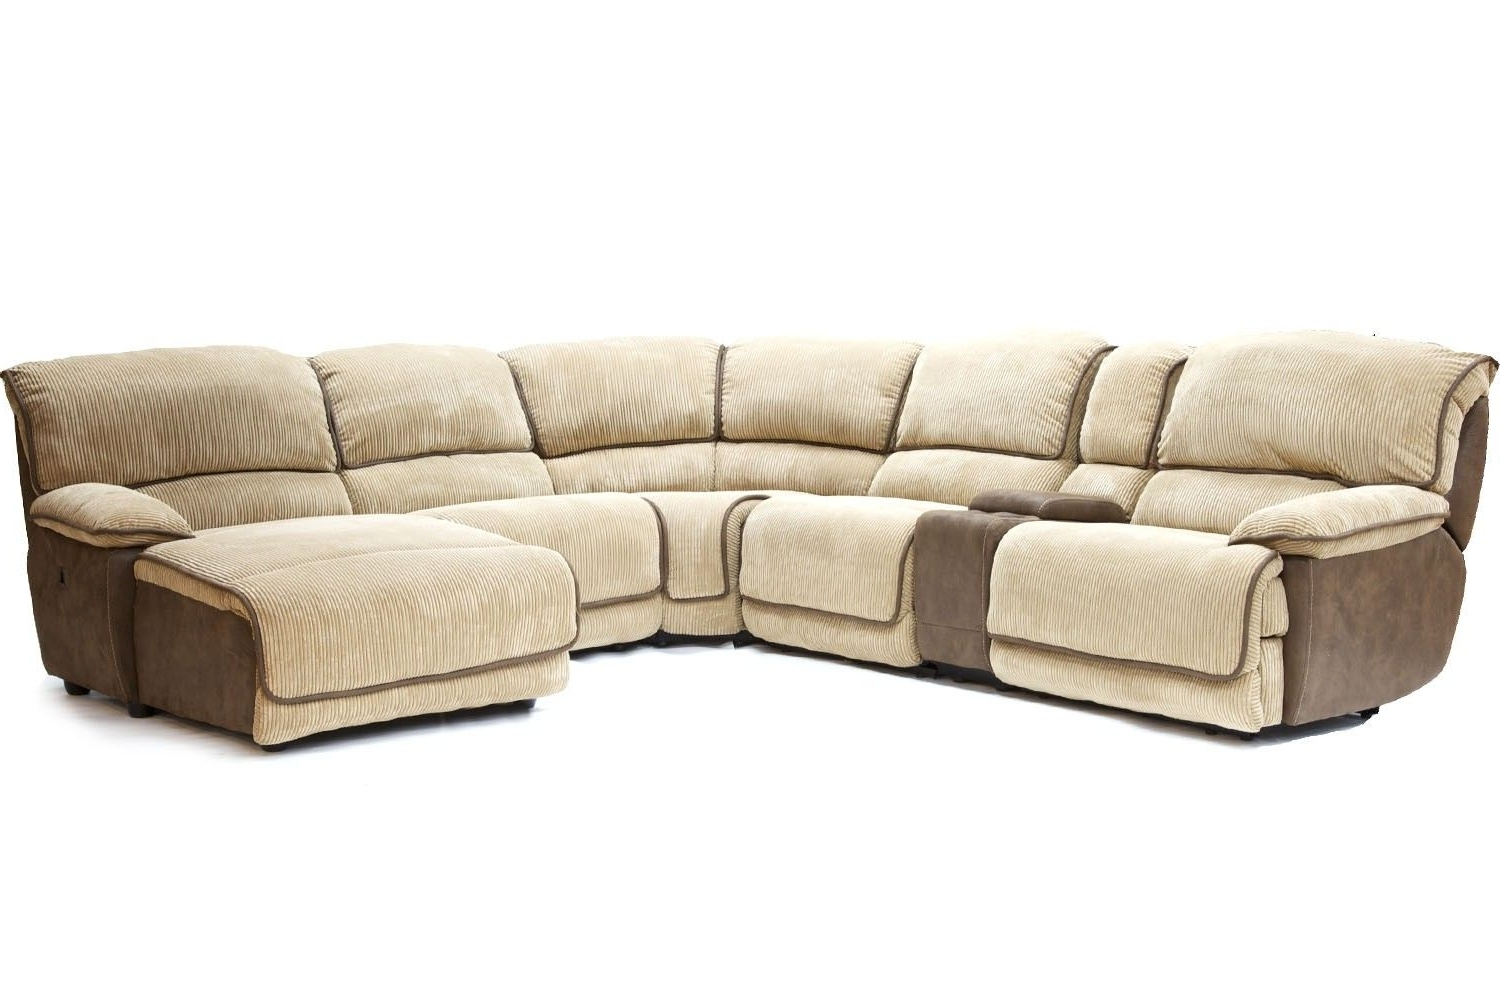 Current Mor Furniture For Less: The Austin Cafe Reclining Living Room Inside Sectional Sofas At Austin (View 7 of 15)